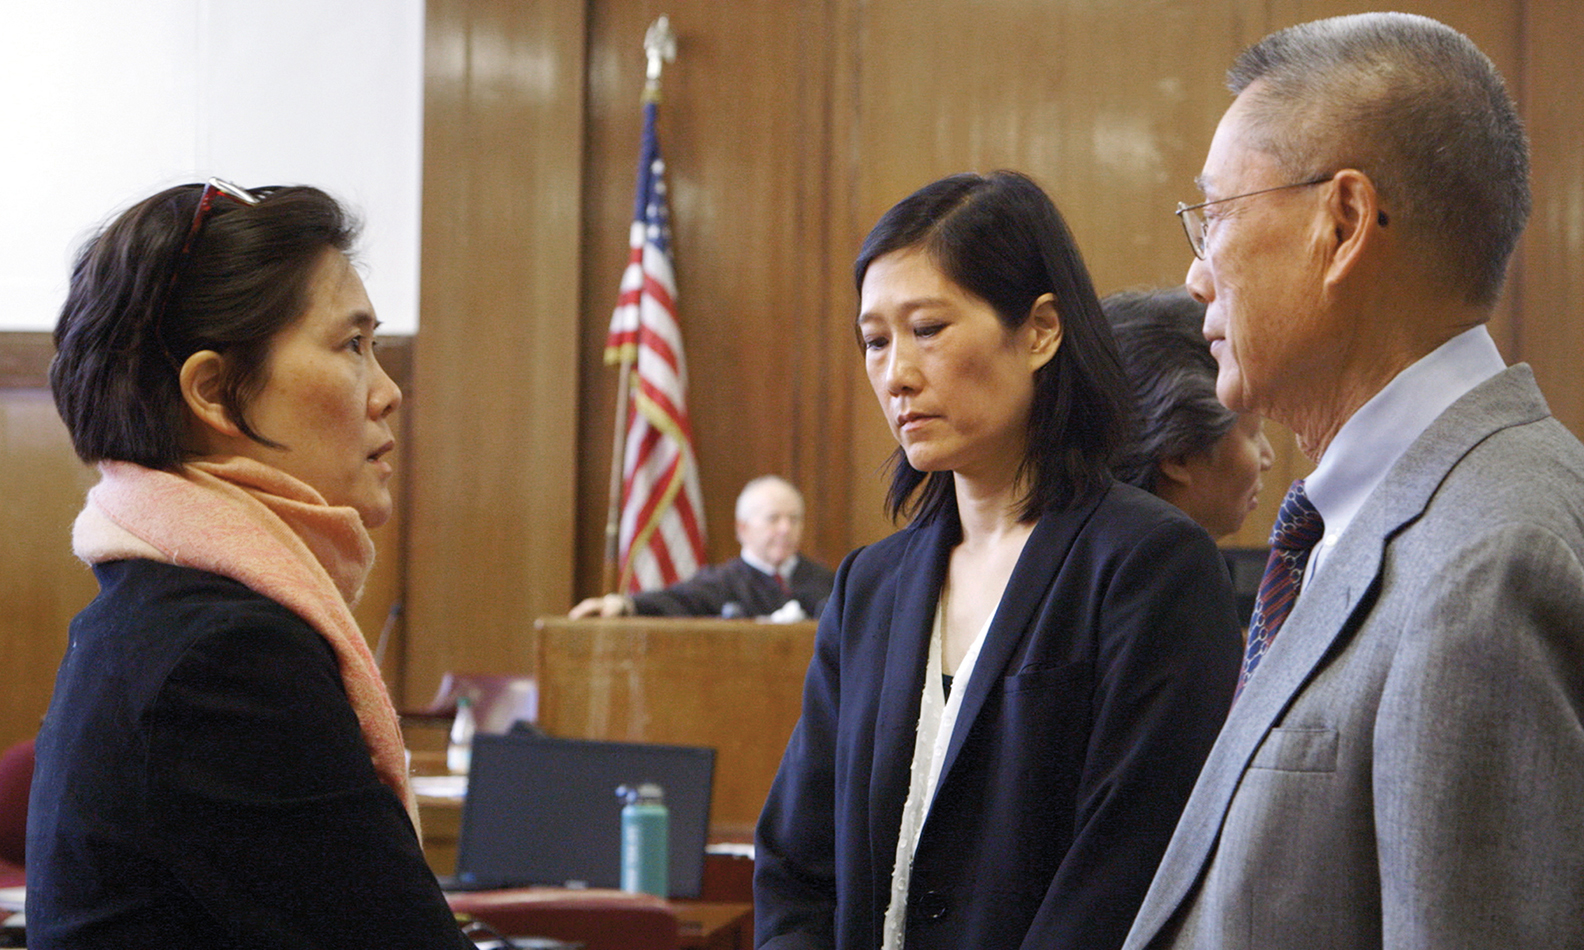 After a three-month trial, from left, Jill, Vera, and Thomas Sung await the verdict in the State Supreme Court in Manhattan.